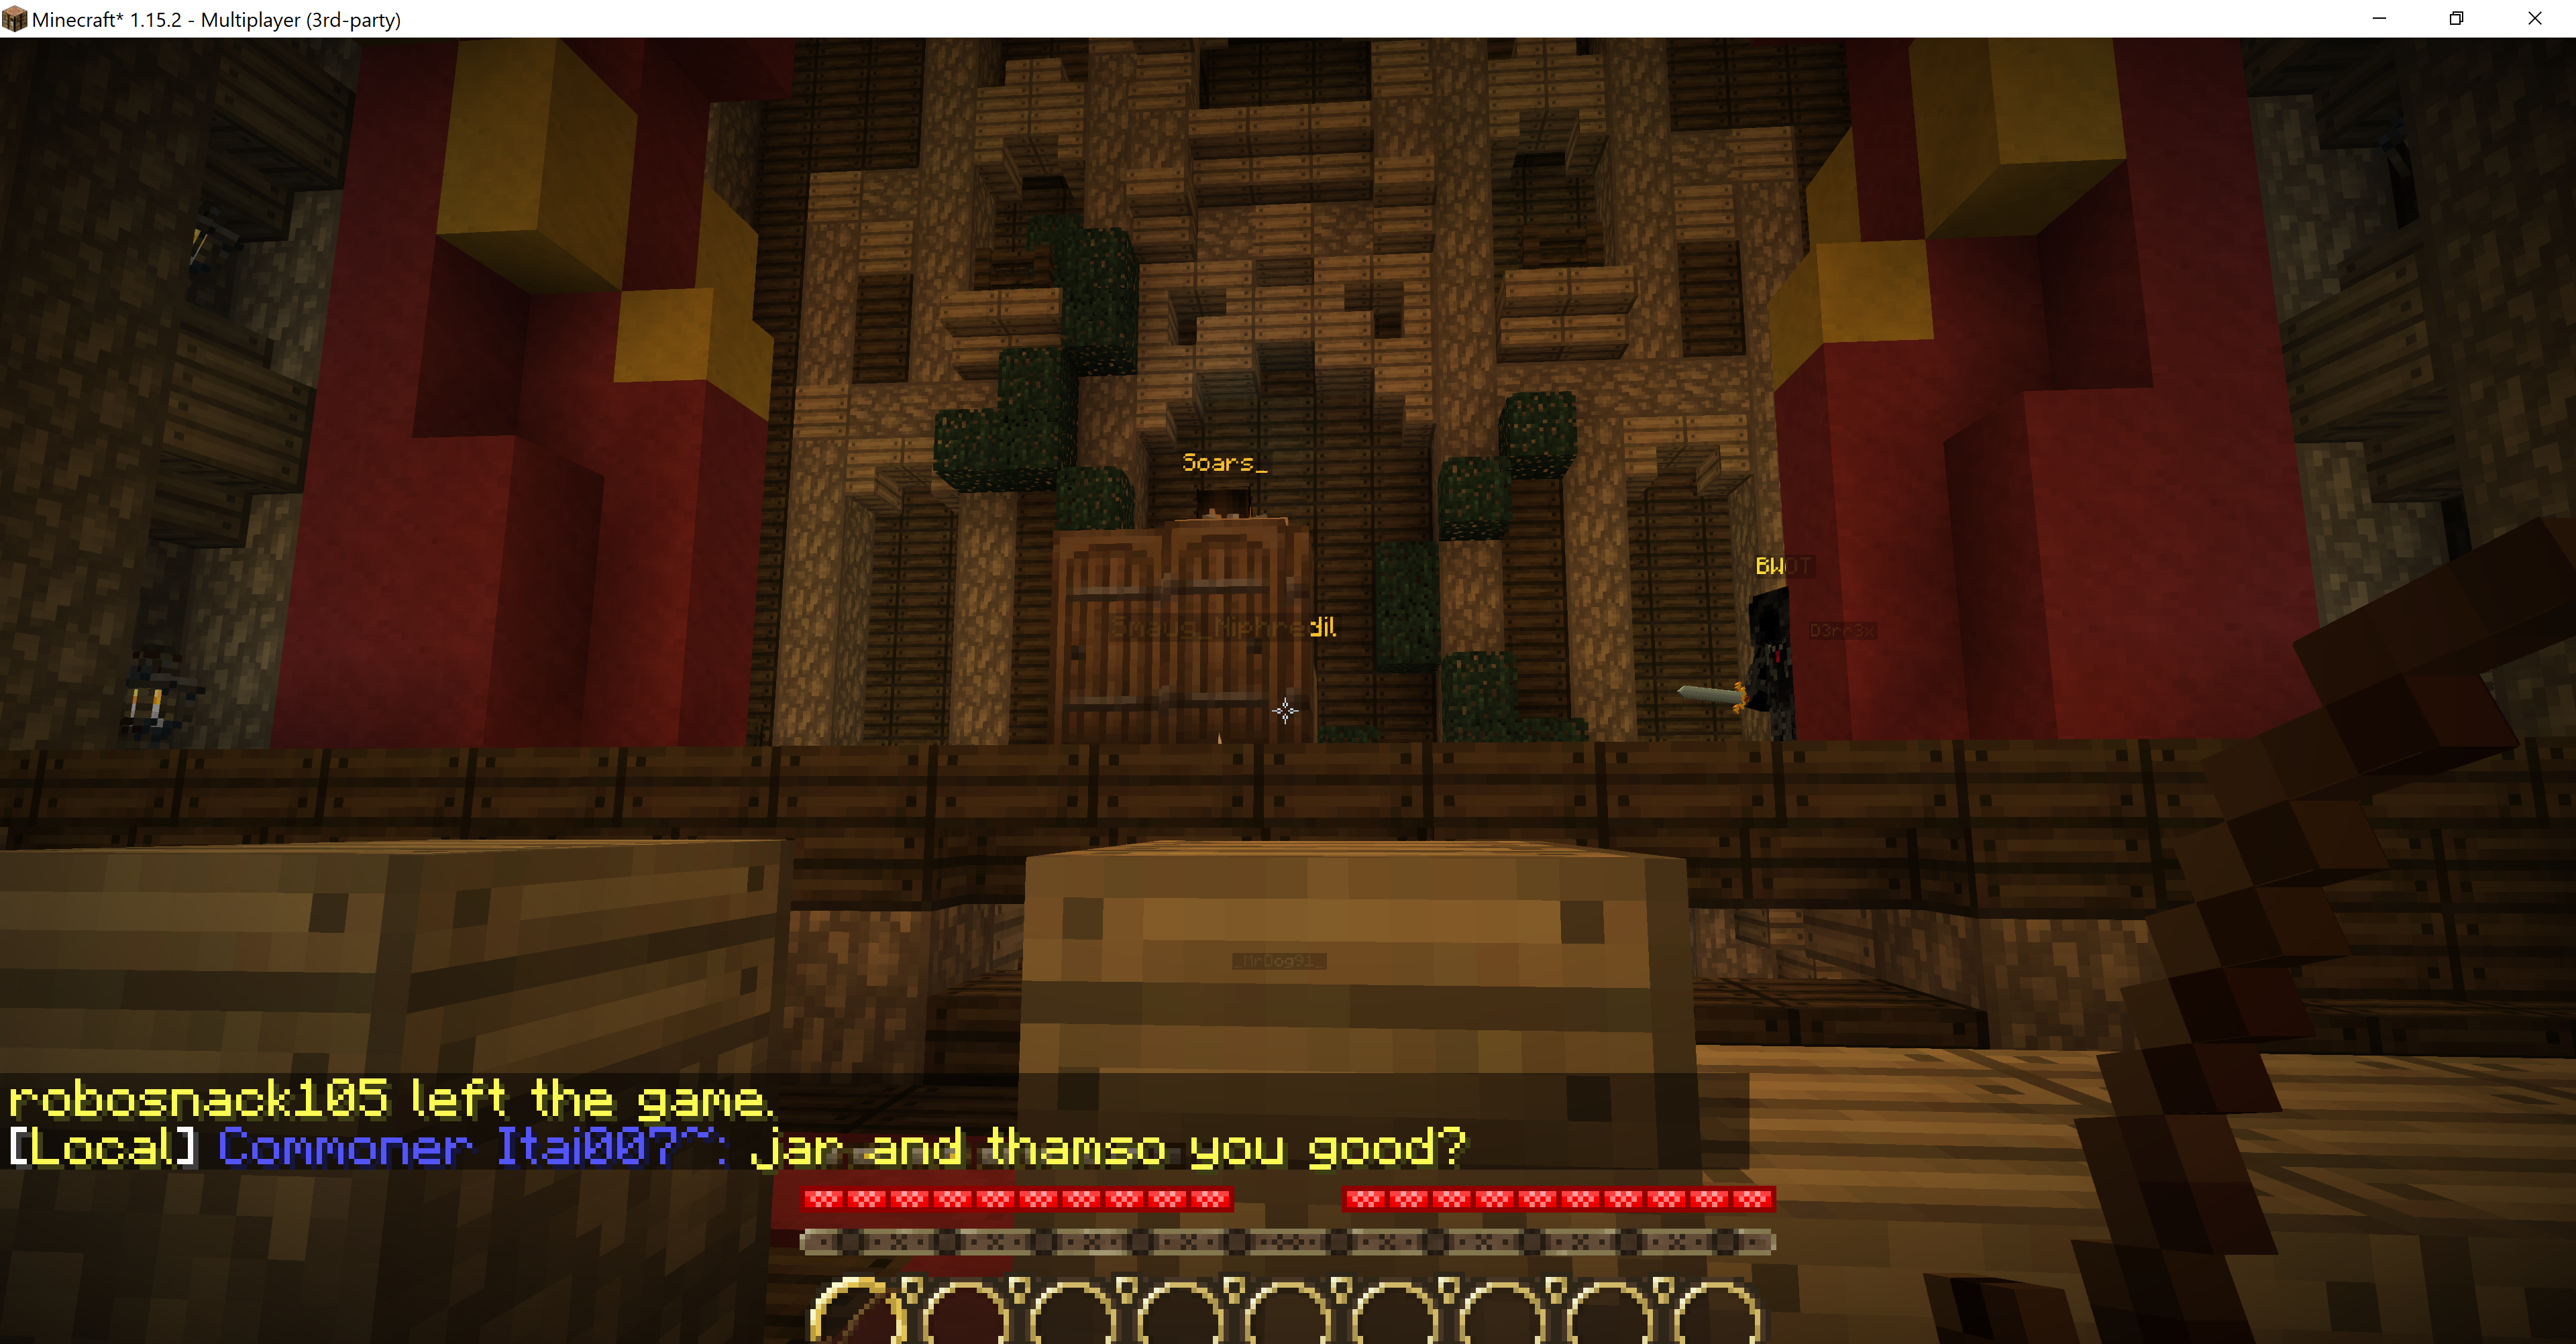 Minecraft_ 1.15.2 - Multiplayer (3rd-party) 7_31_2020 3_02_34 PM.png